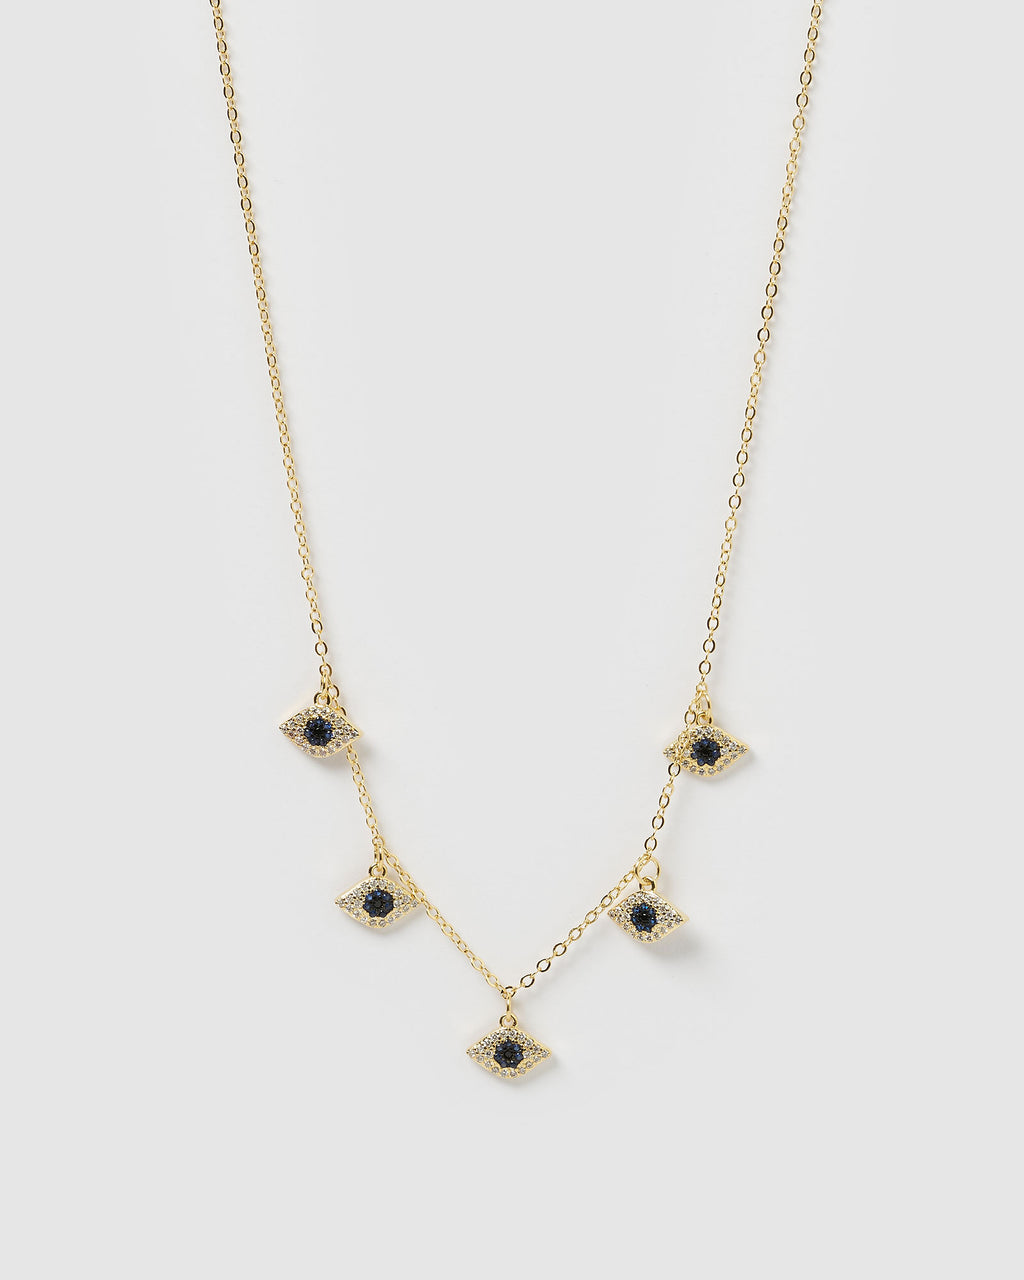 Izoa Jamie Evil Eye Choker Necklace Gold